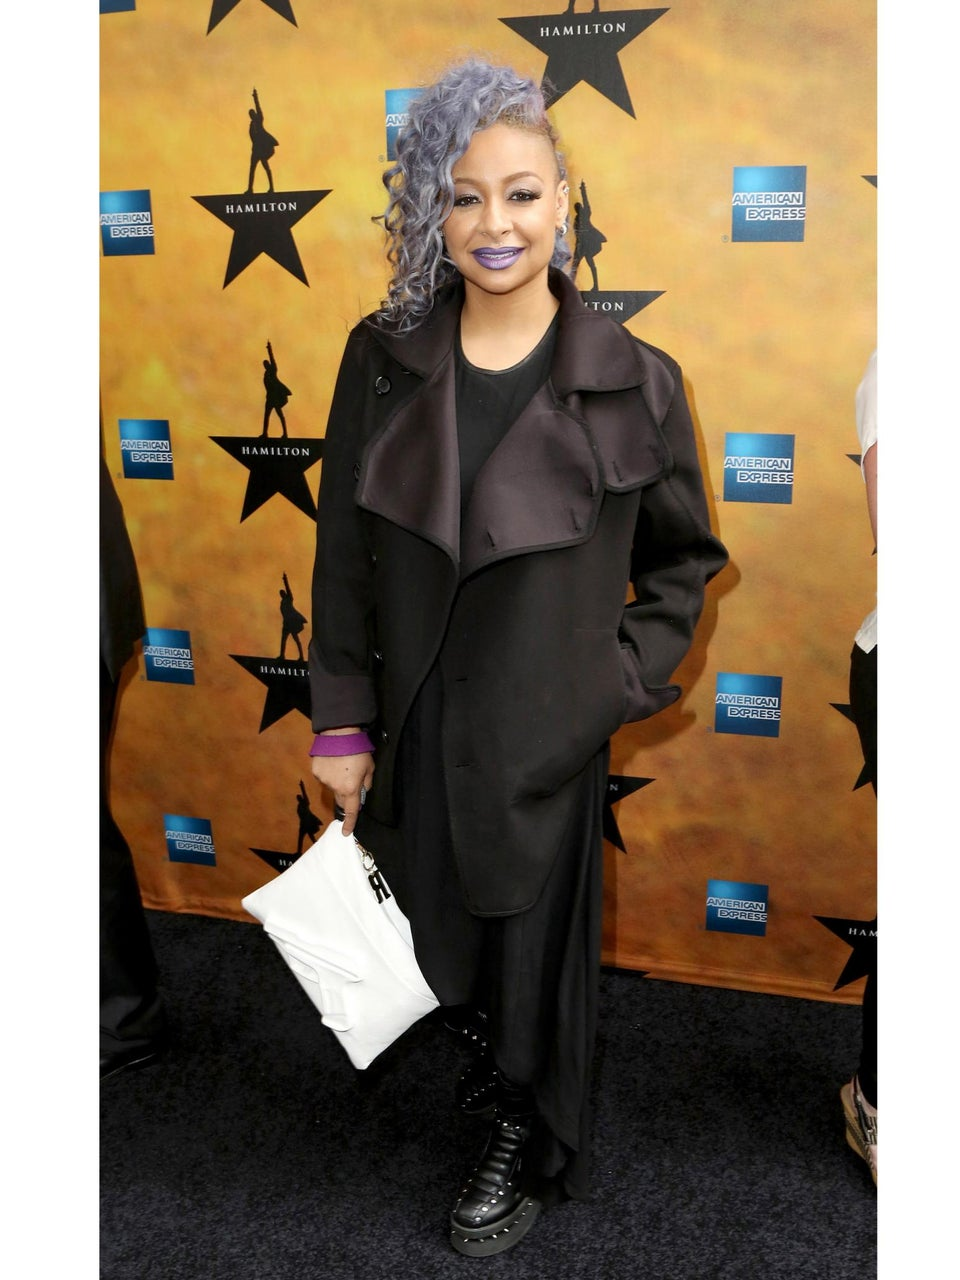 Raven-Symoné's Father Defends His Daughter 'Even If She Says Some Dumb S–t'